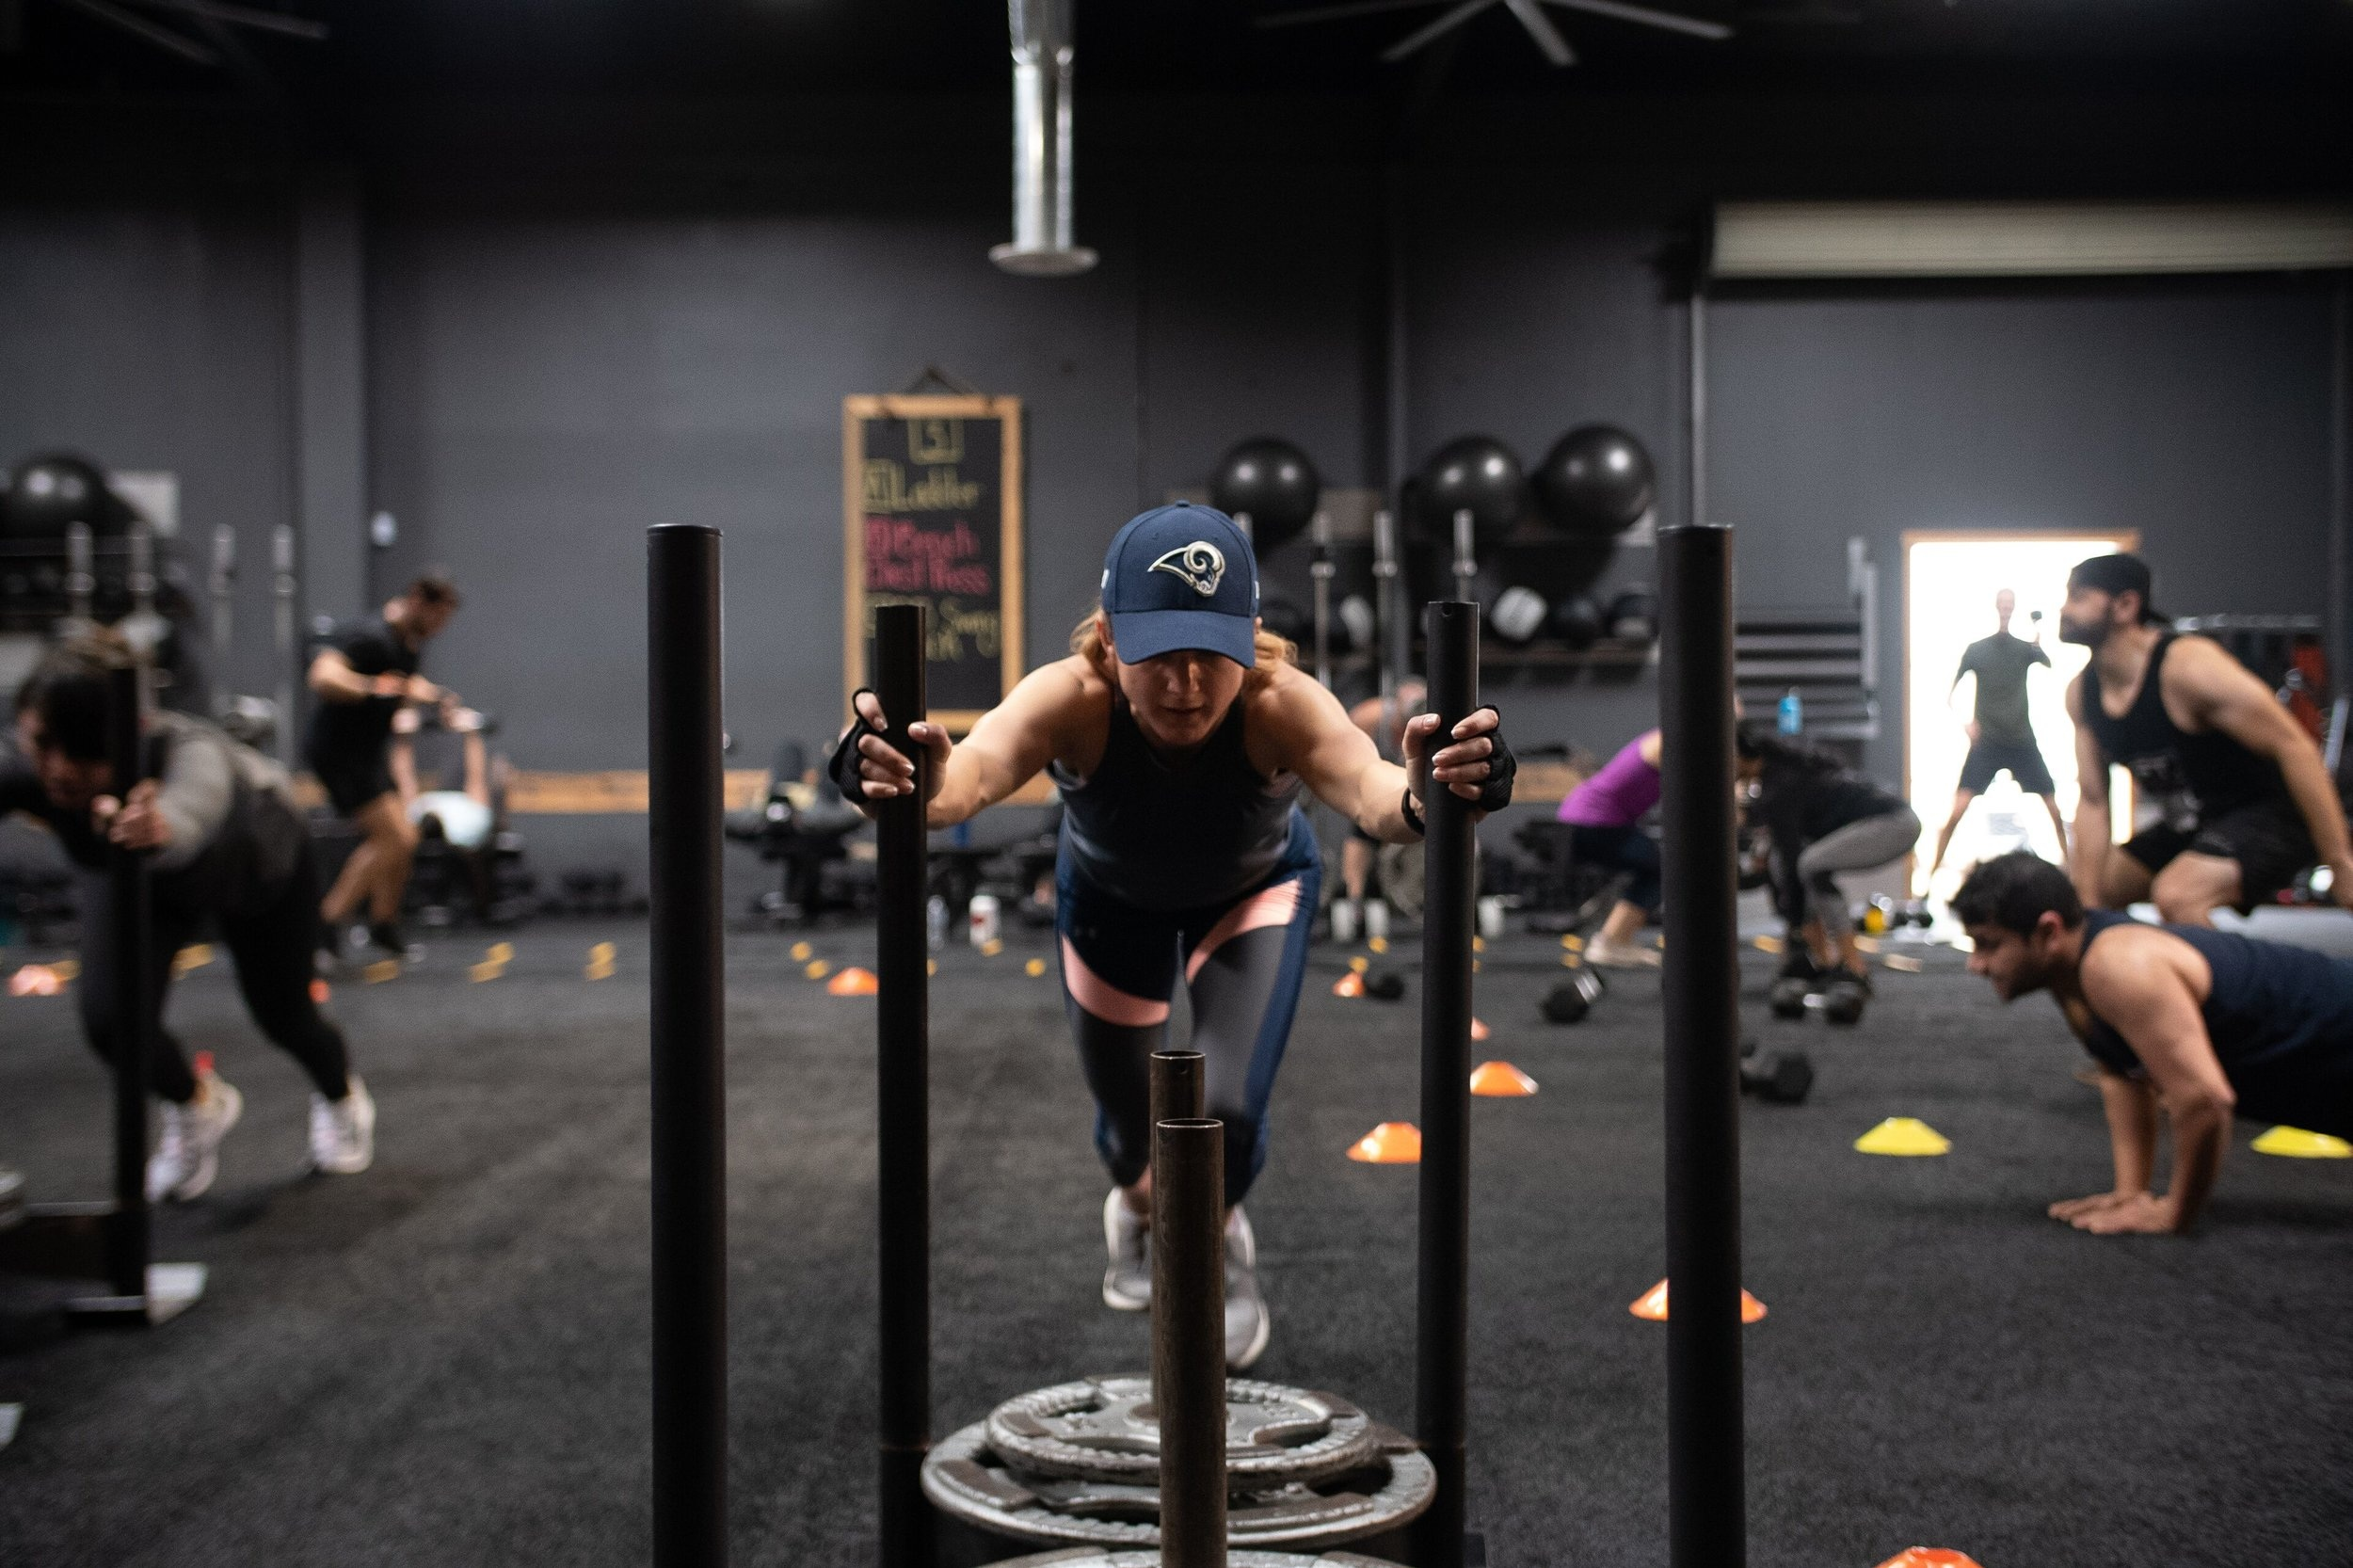 1 Month ($49.99) - Not ready to make a big commitment? No problem! For less money than your favorite latte ($1.66 per day) you can enjoy all-access to the best workouts anywhere!